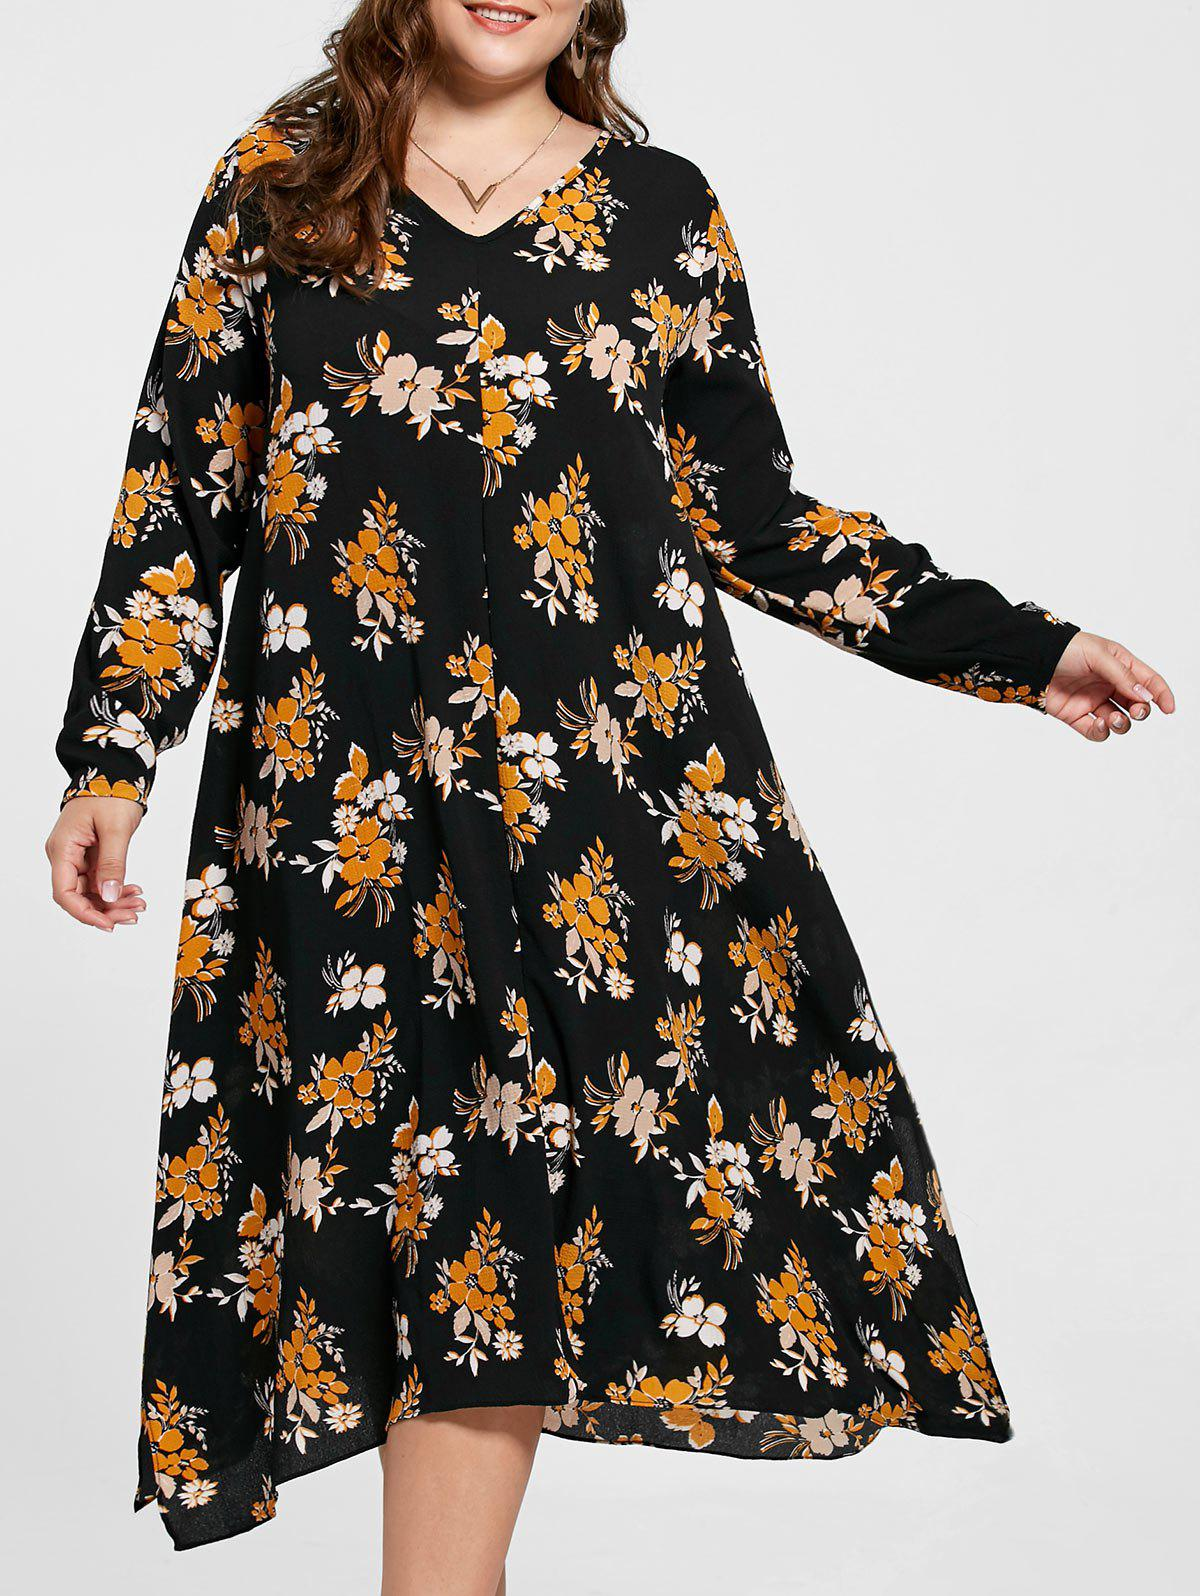 Plus Size Handkerchief Floral Print Dress - BLACK 3XL